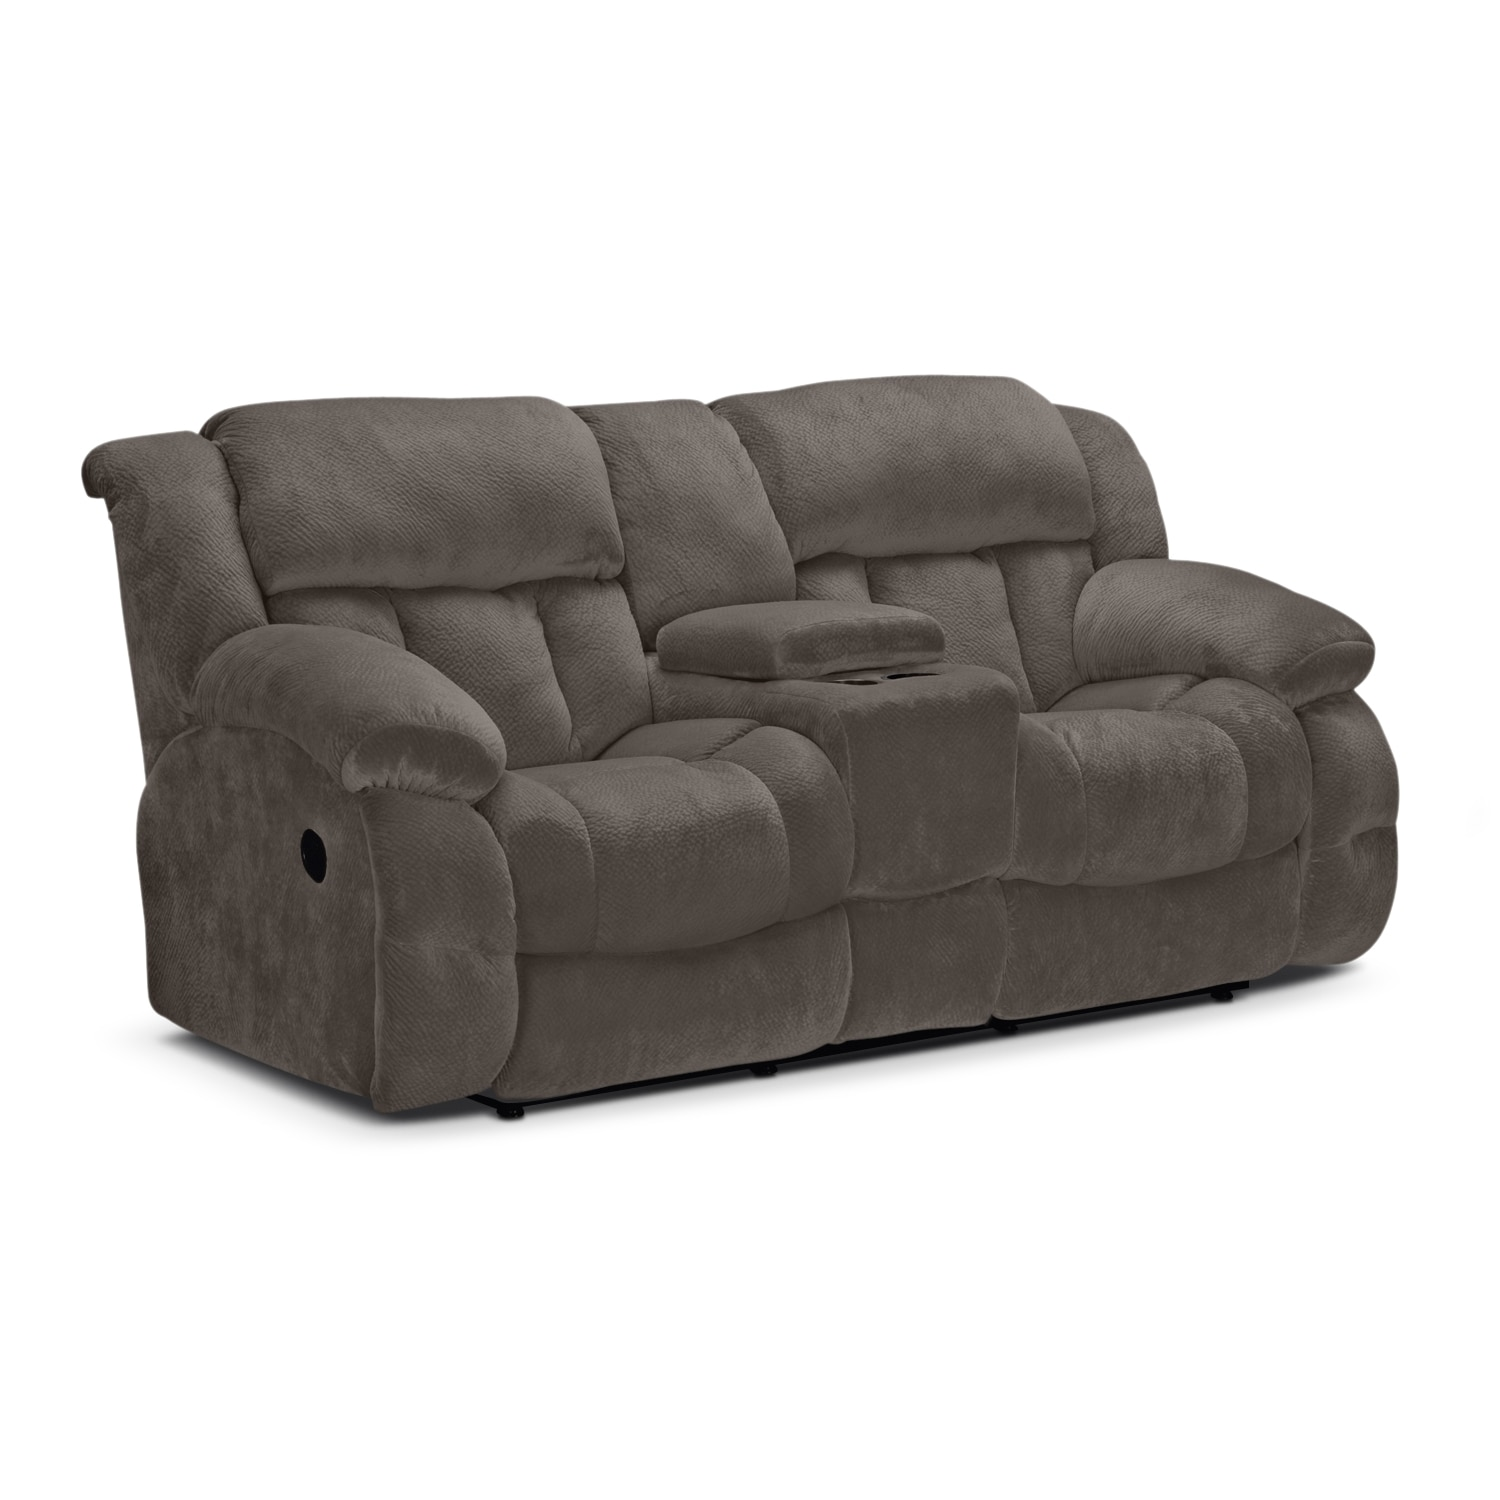 Park City Dual Reclining Sofa Loveseat and Glider Recliner Set